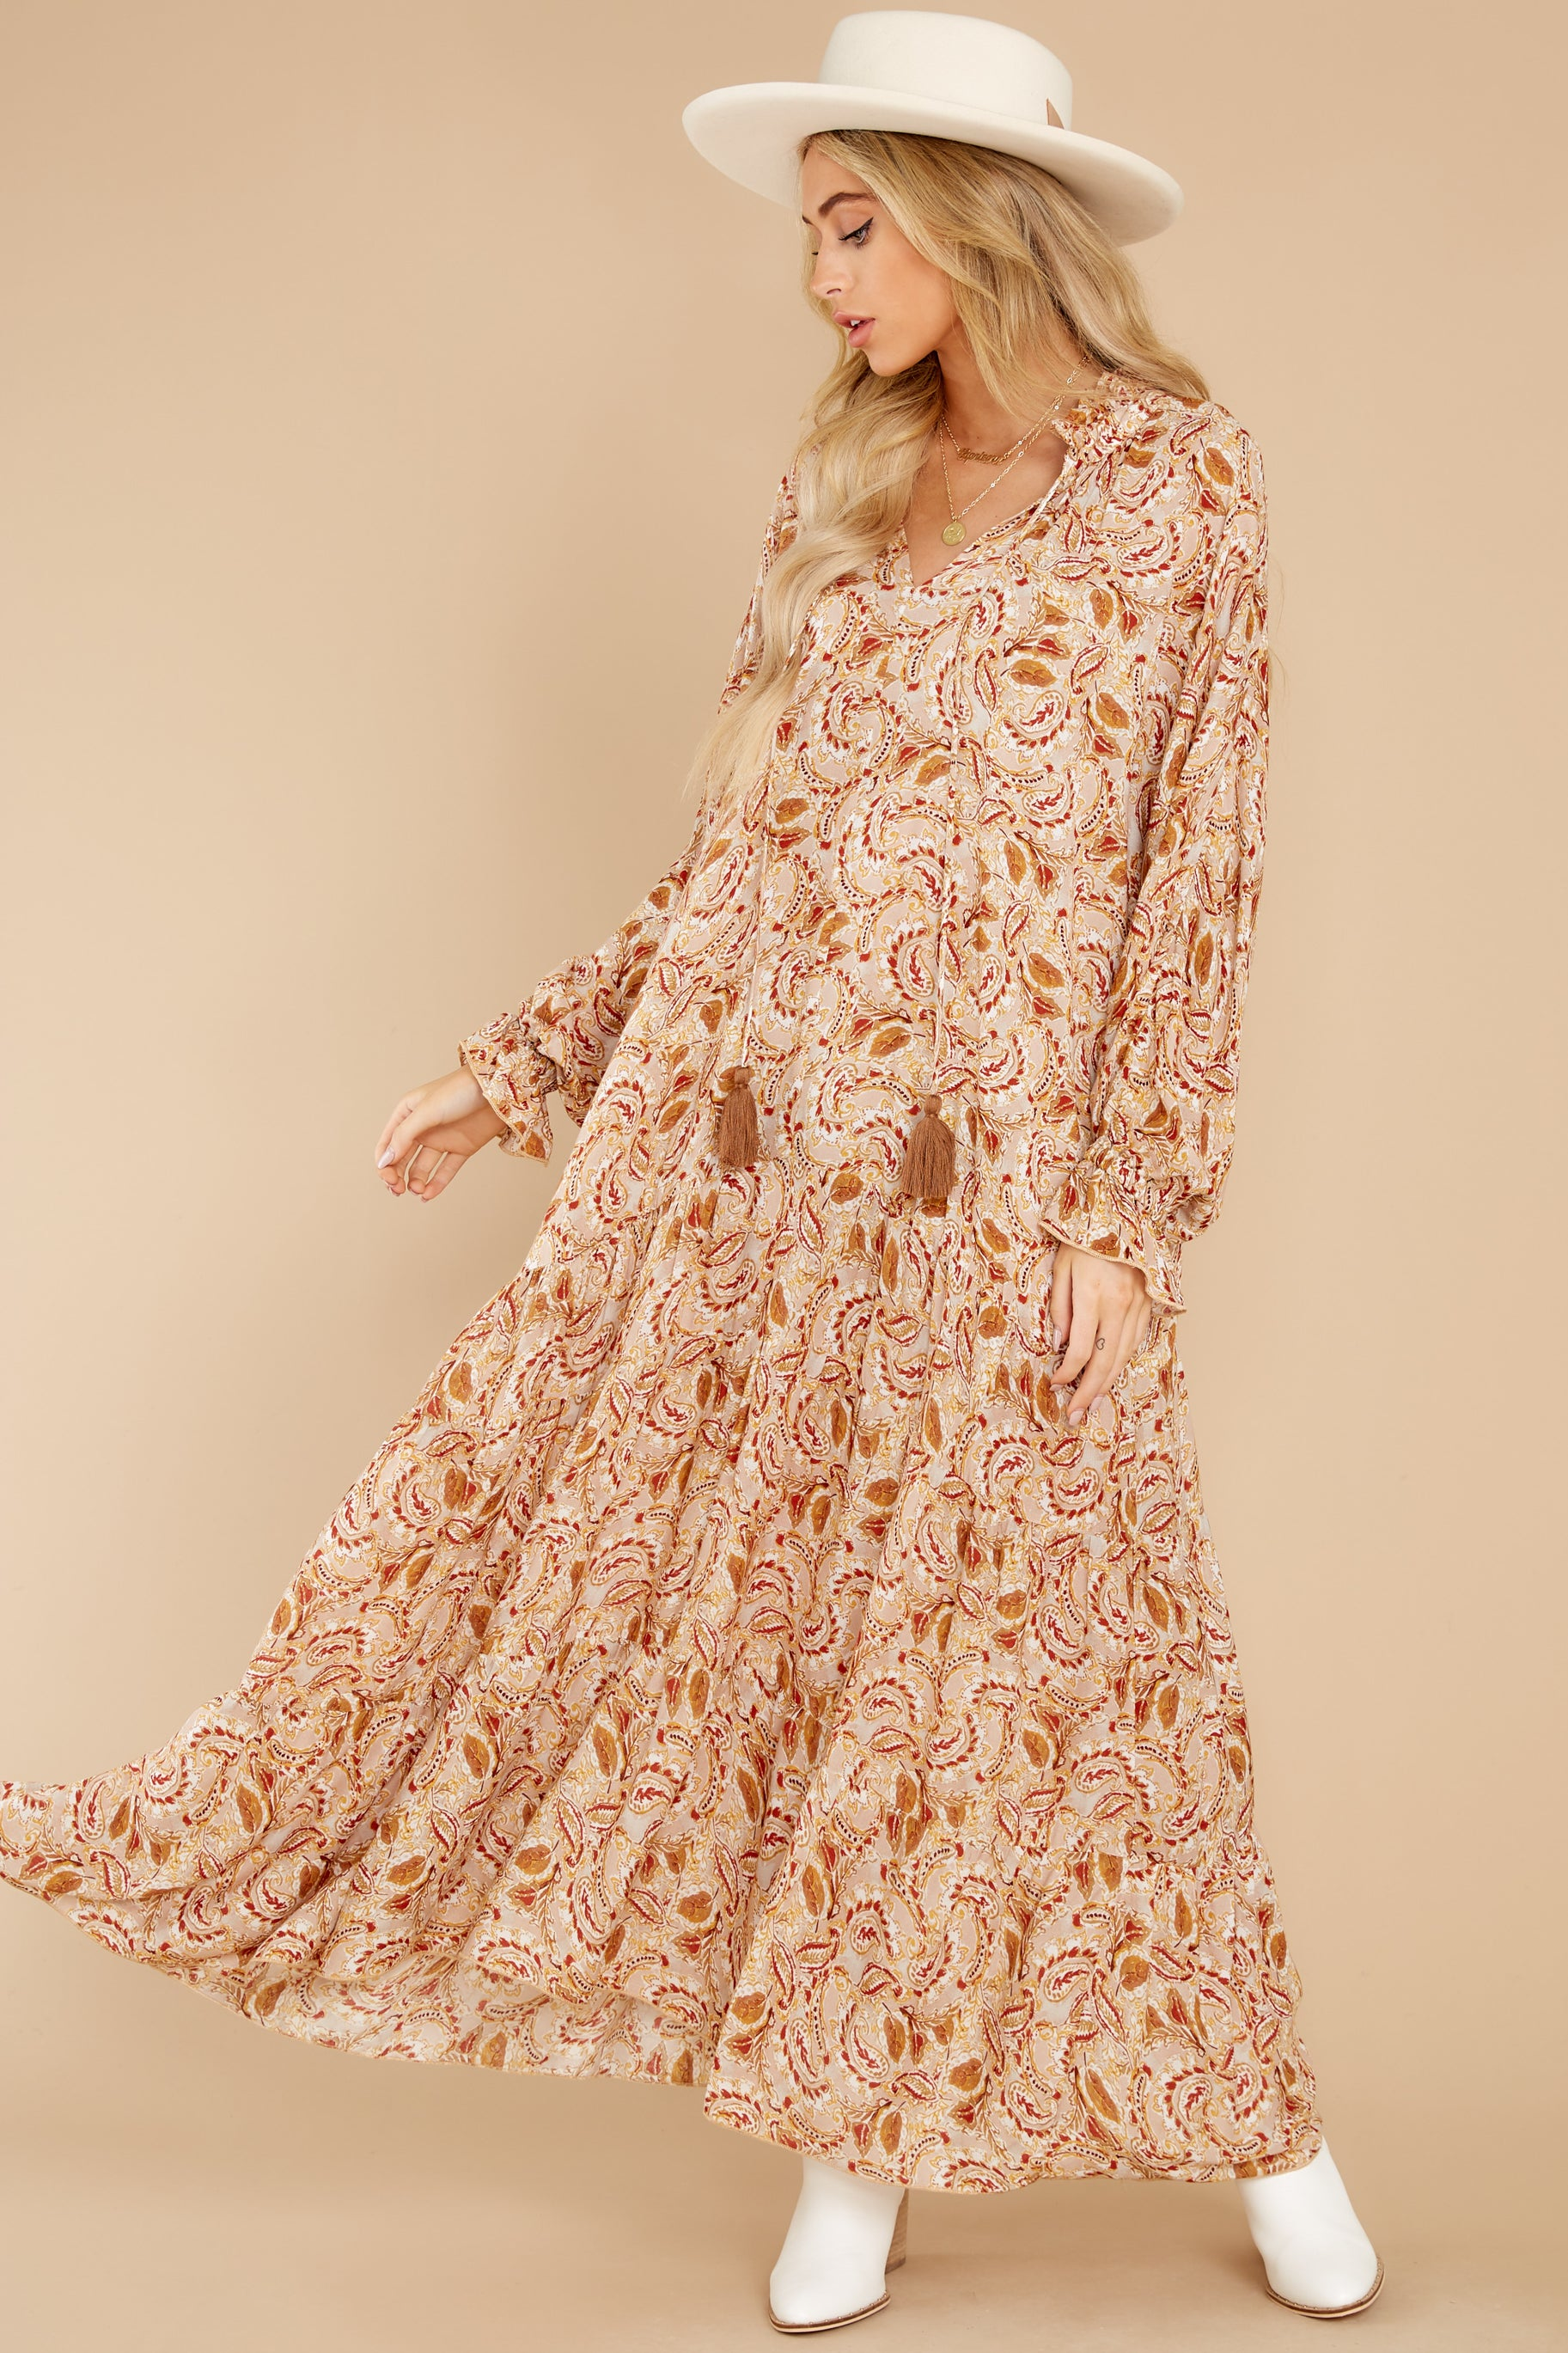 Cottagecore Dresses Aesthetic, Granny, Vintage Aura Falling Foliage Beige Multi Print Maxi Dress $64.00 AT vintagedancer.com